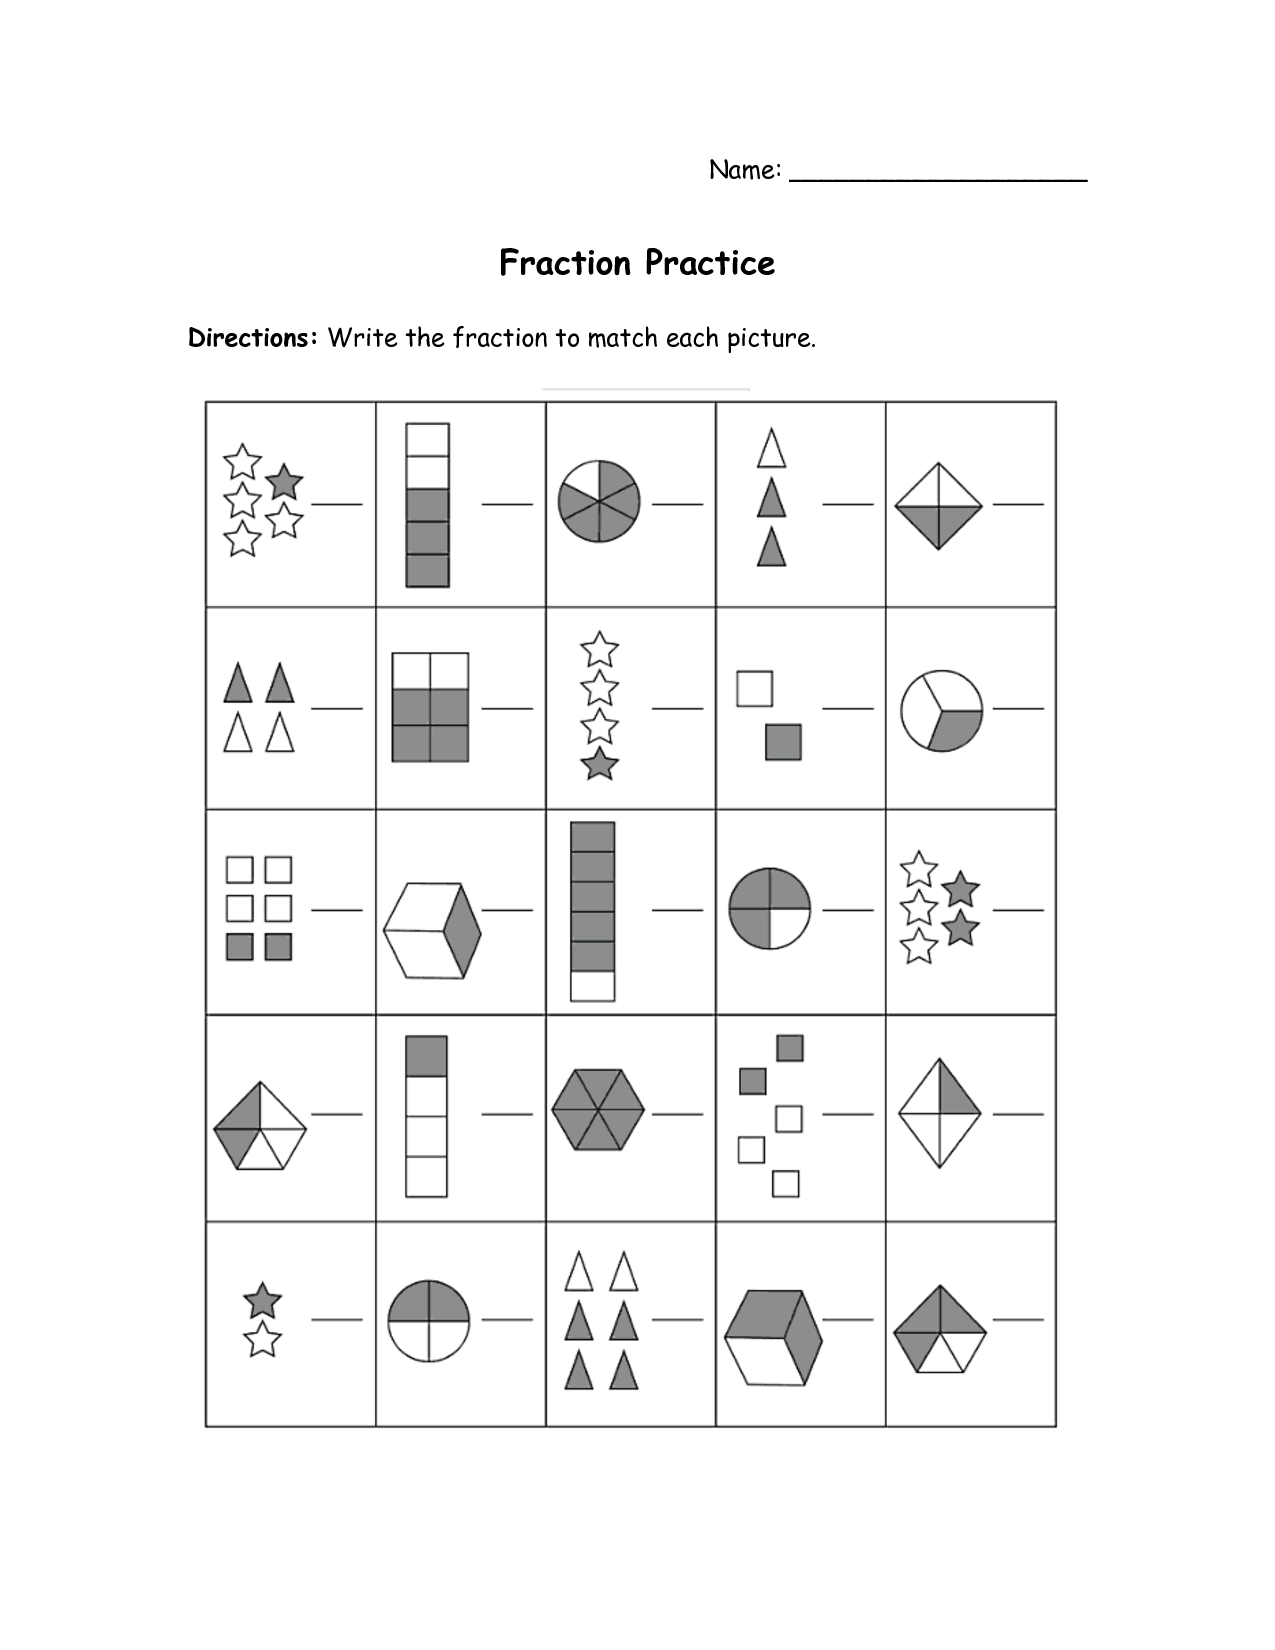 Fraction Practice Worksheets